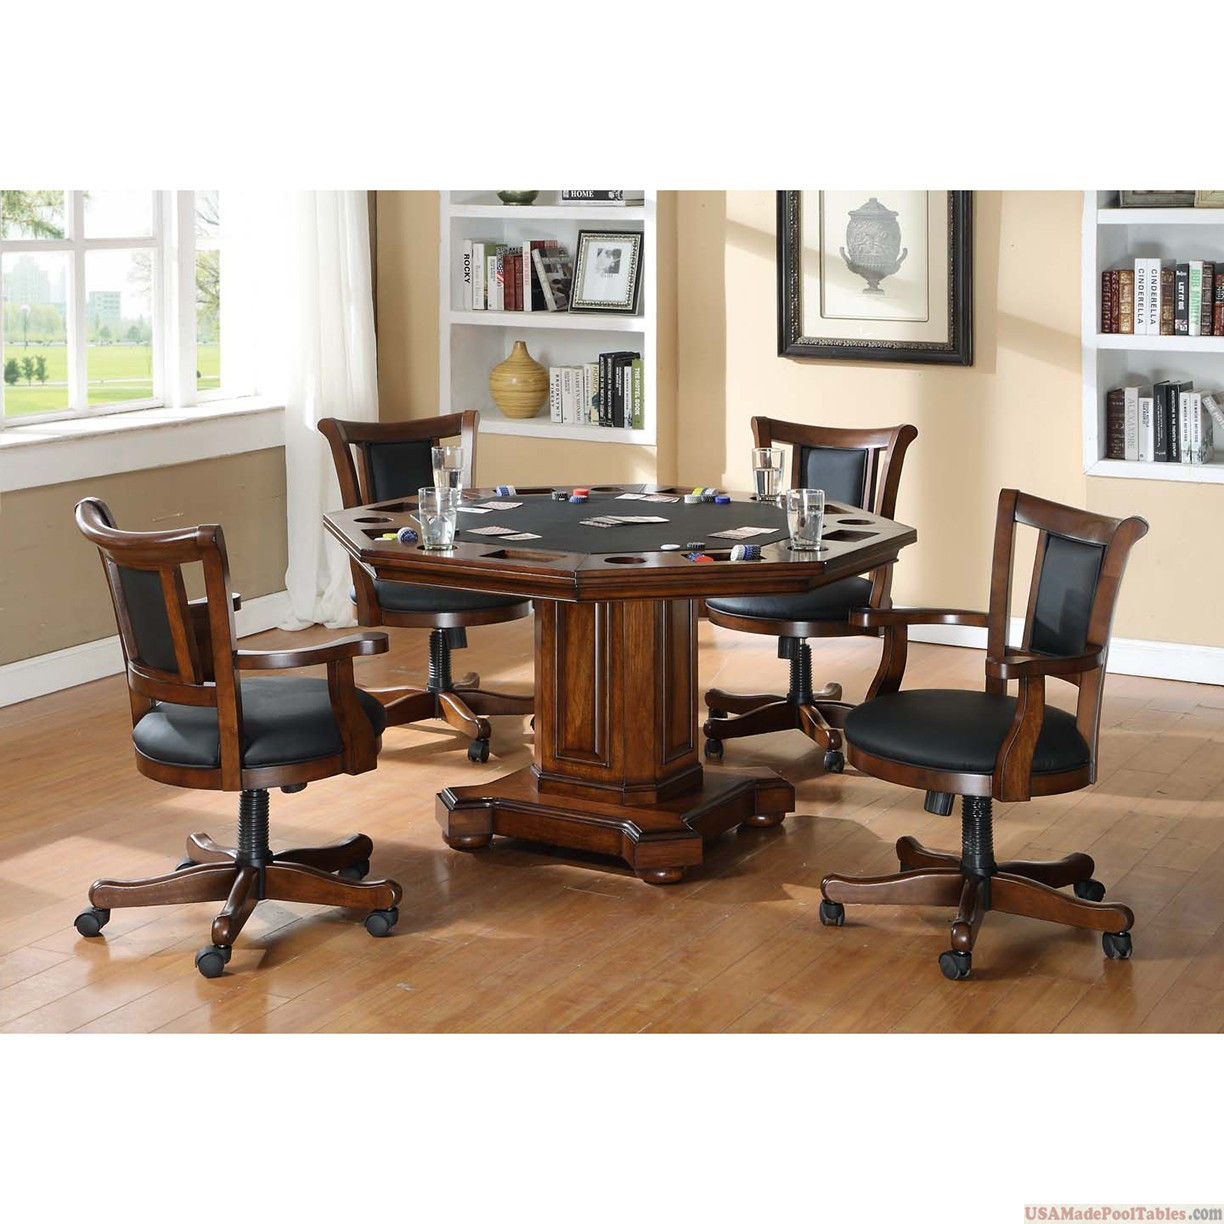 2-IN-1 GAME TABLE AND WITH 4 CHAIRS SET